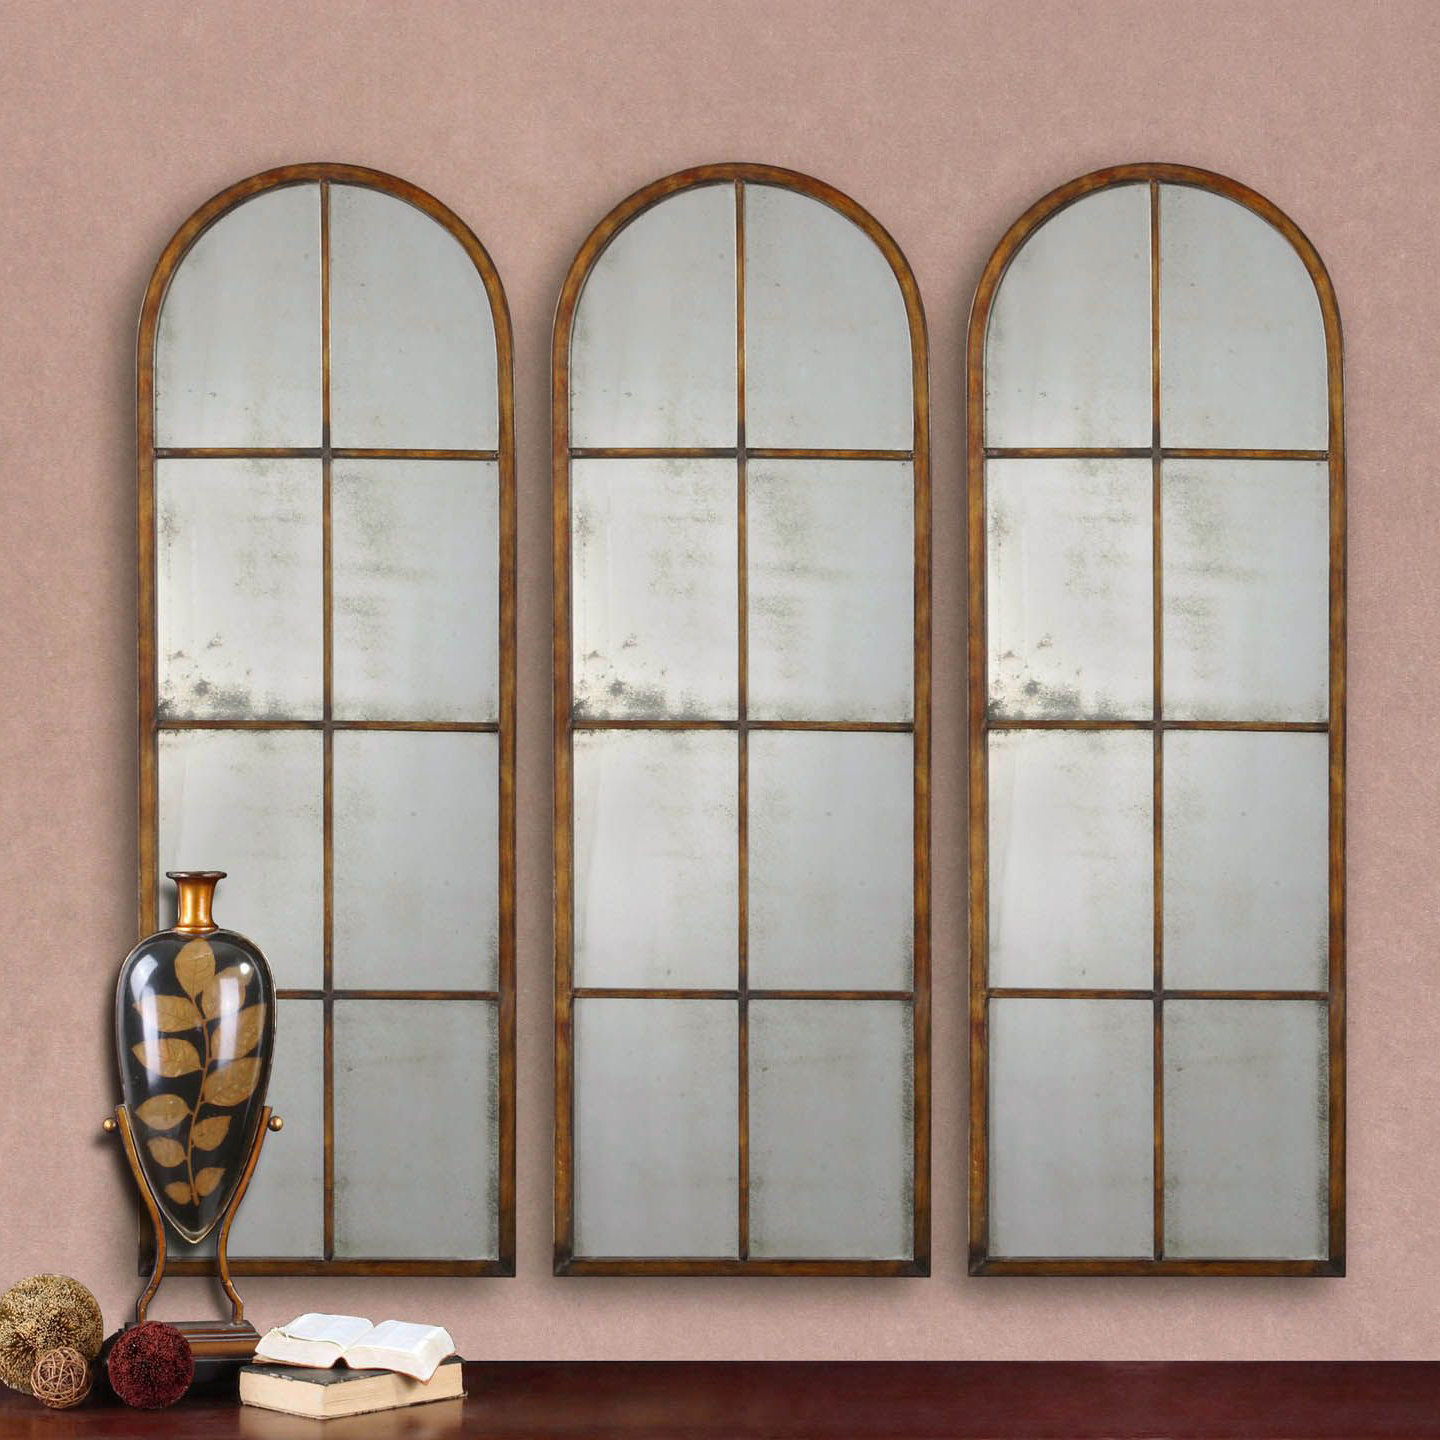 Tellier Accent Wall Mirrors Intended For Well Known Nerissa Arched Accent Mirror (View 14 of 20)